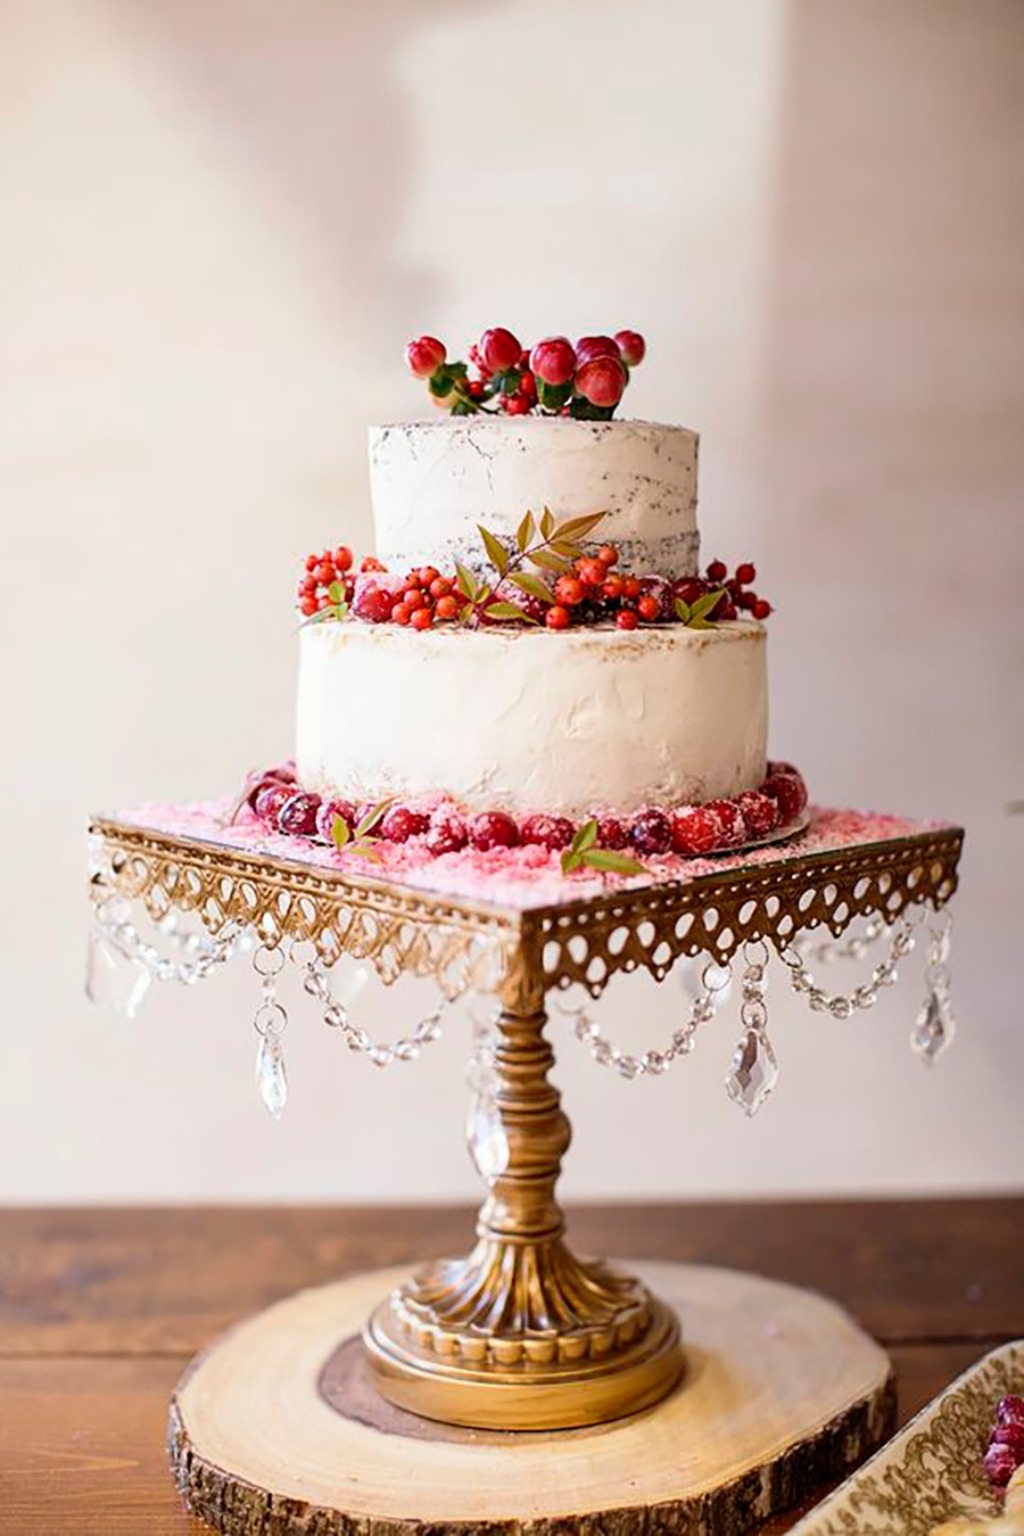 Rustic two-layered cake topped with winter berries from Entwined Events Catering | Heather Kidd Photography | Square Chandelier Antique